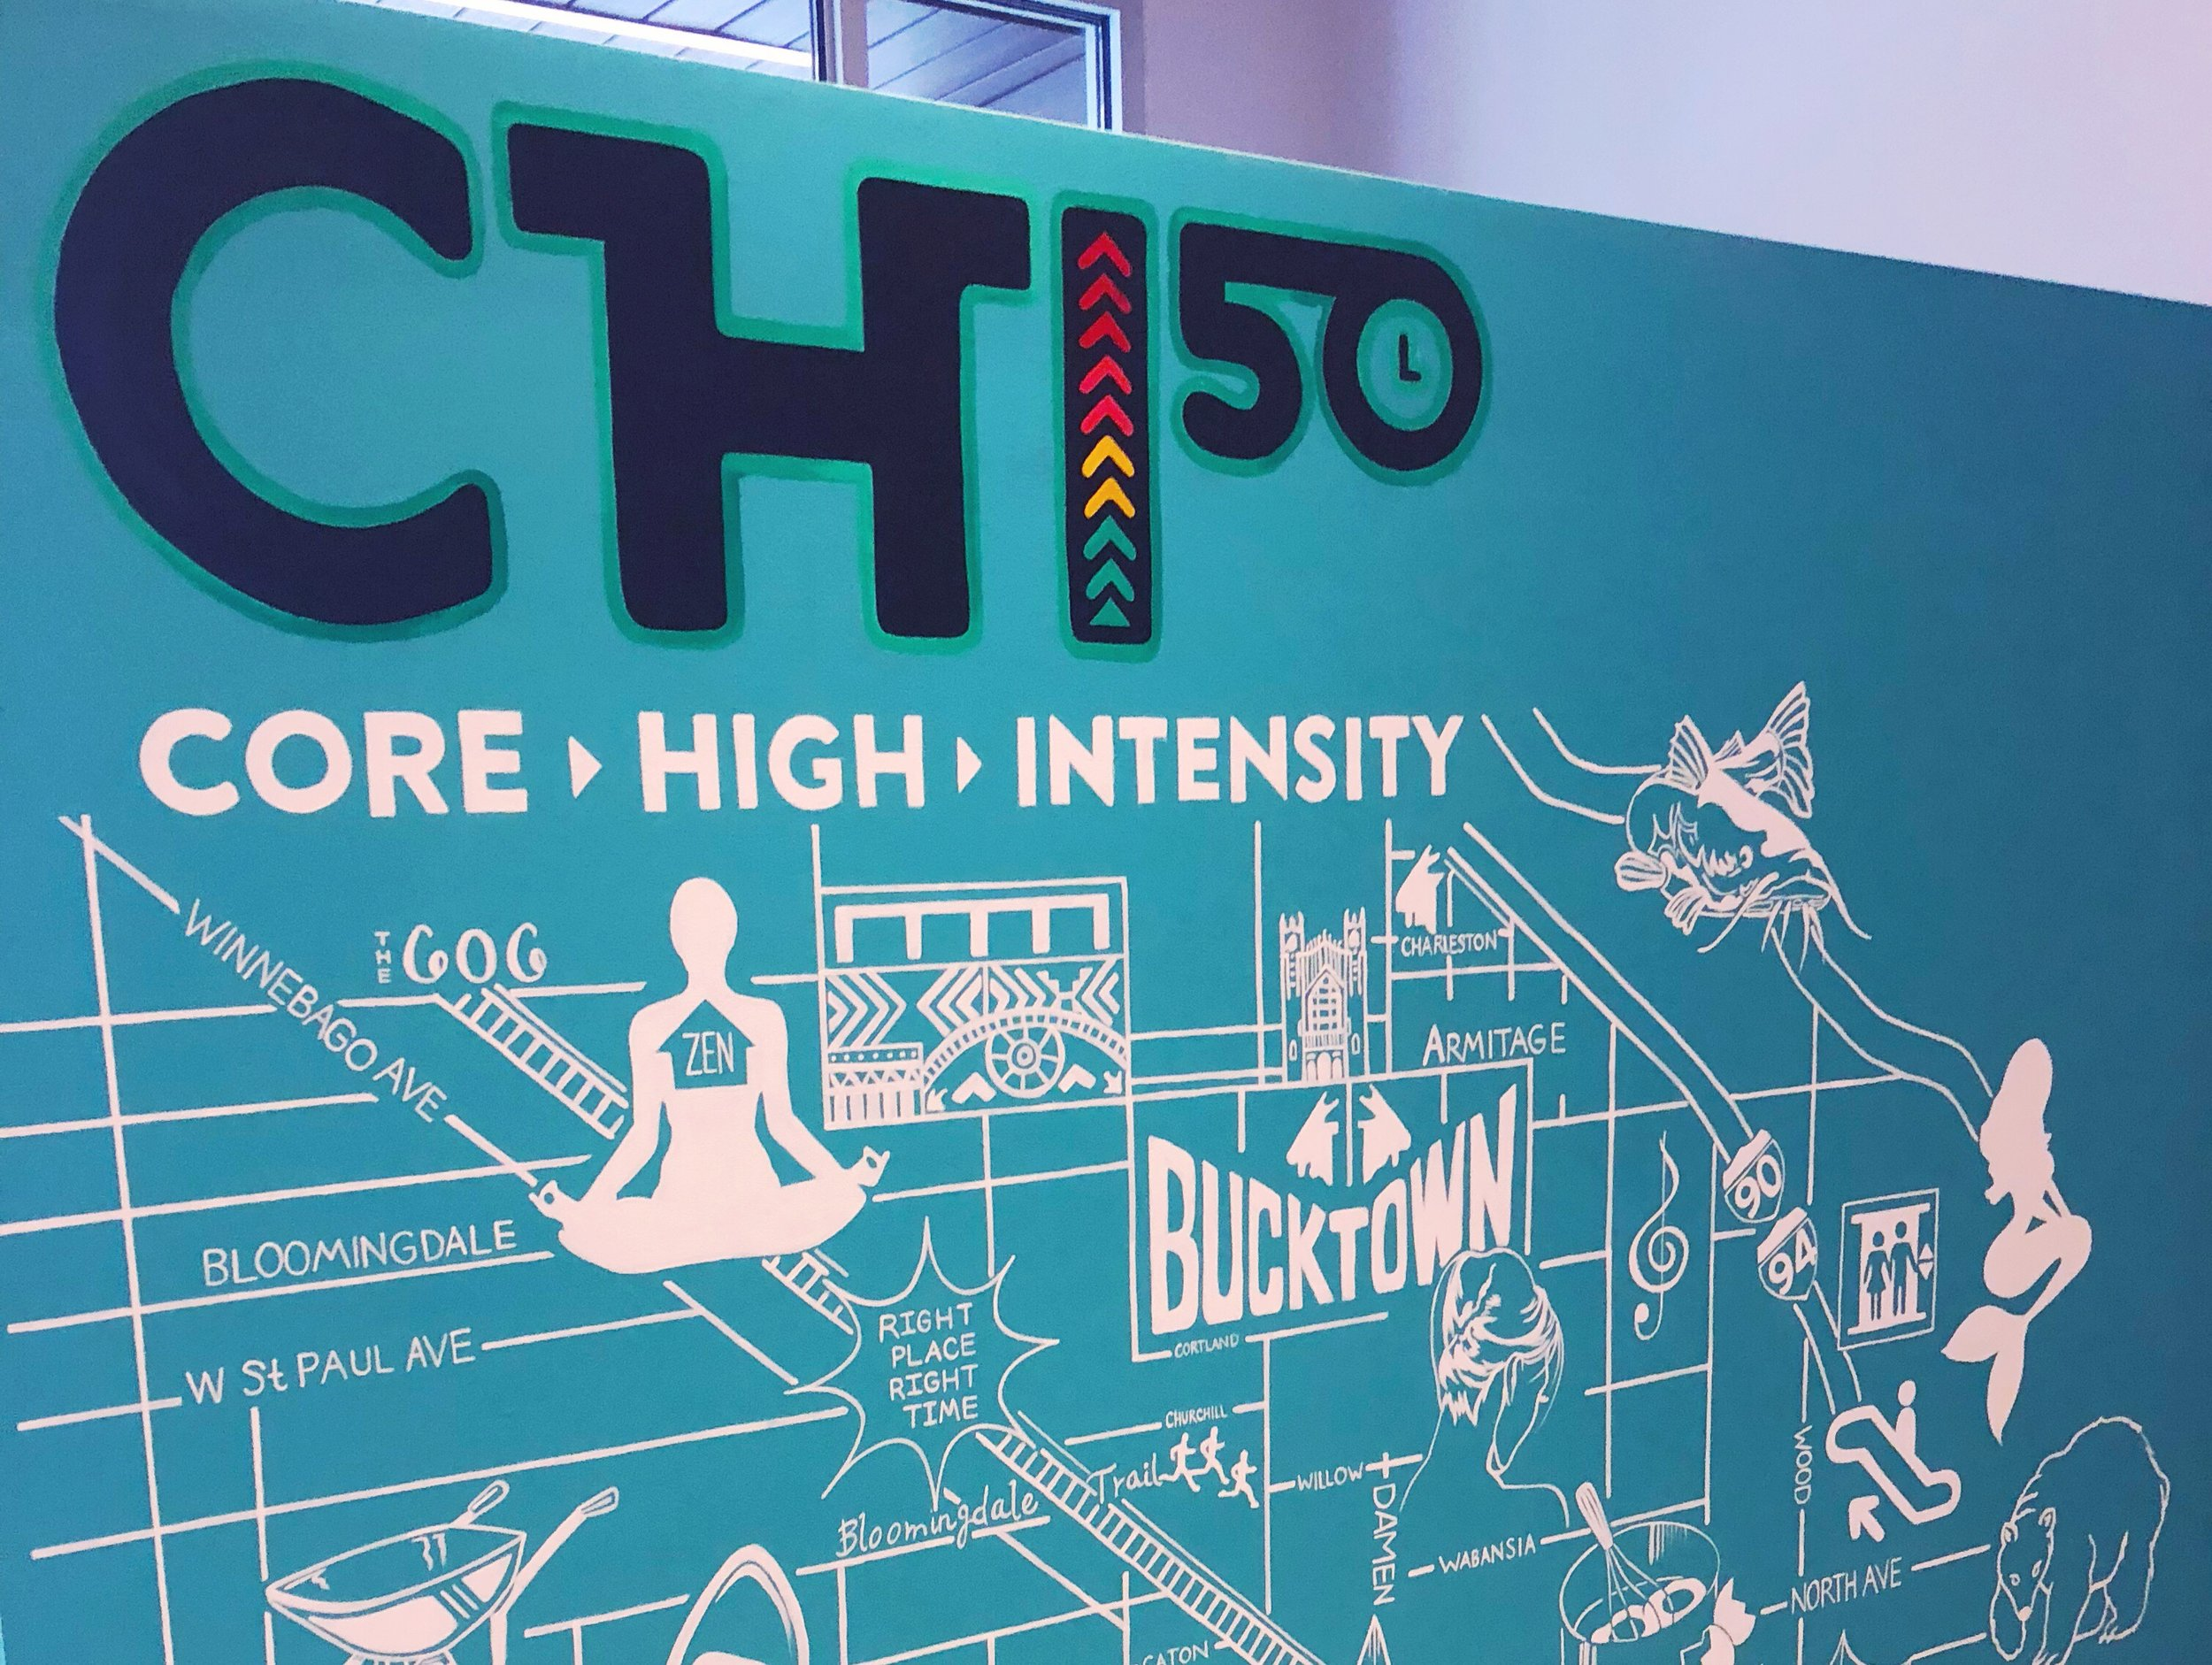 CHI50 studio wall in Chicago.